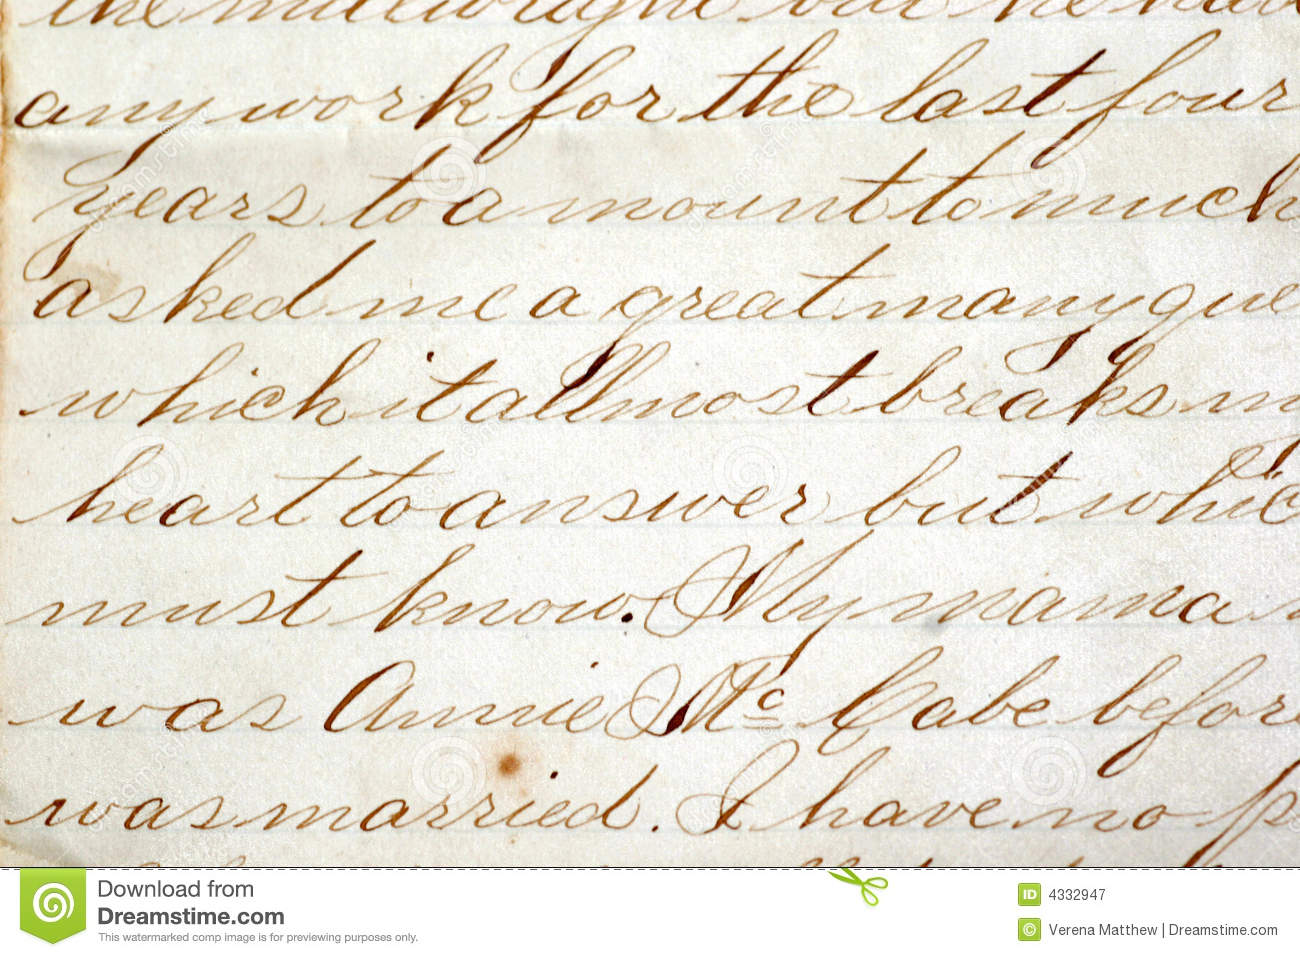 http://thumbs.dreamstime.com/z/old-writing-4332947.jpg